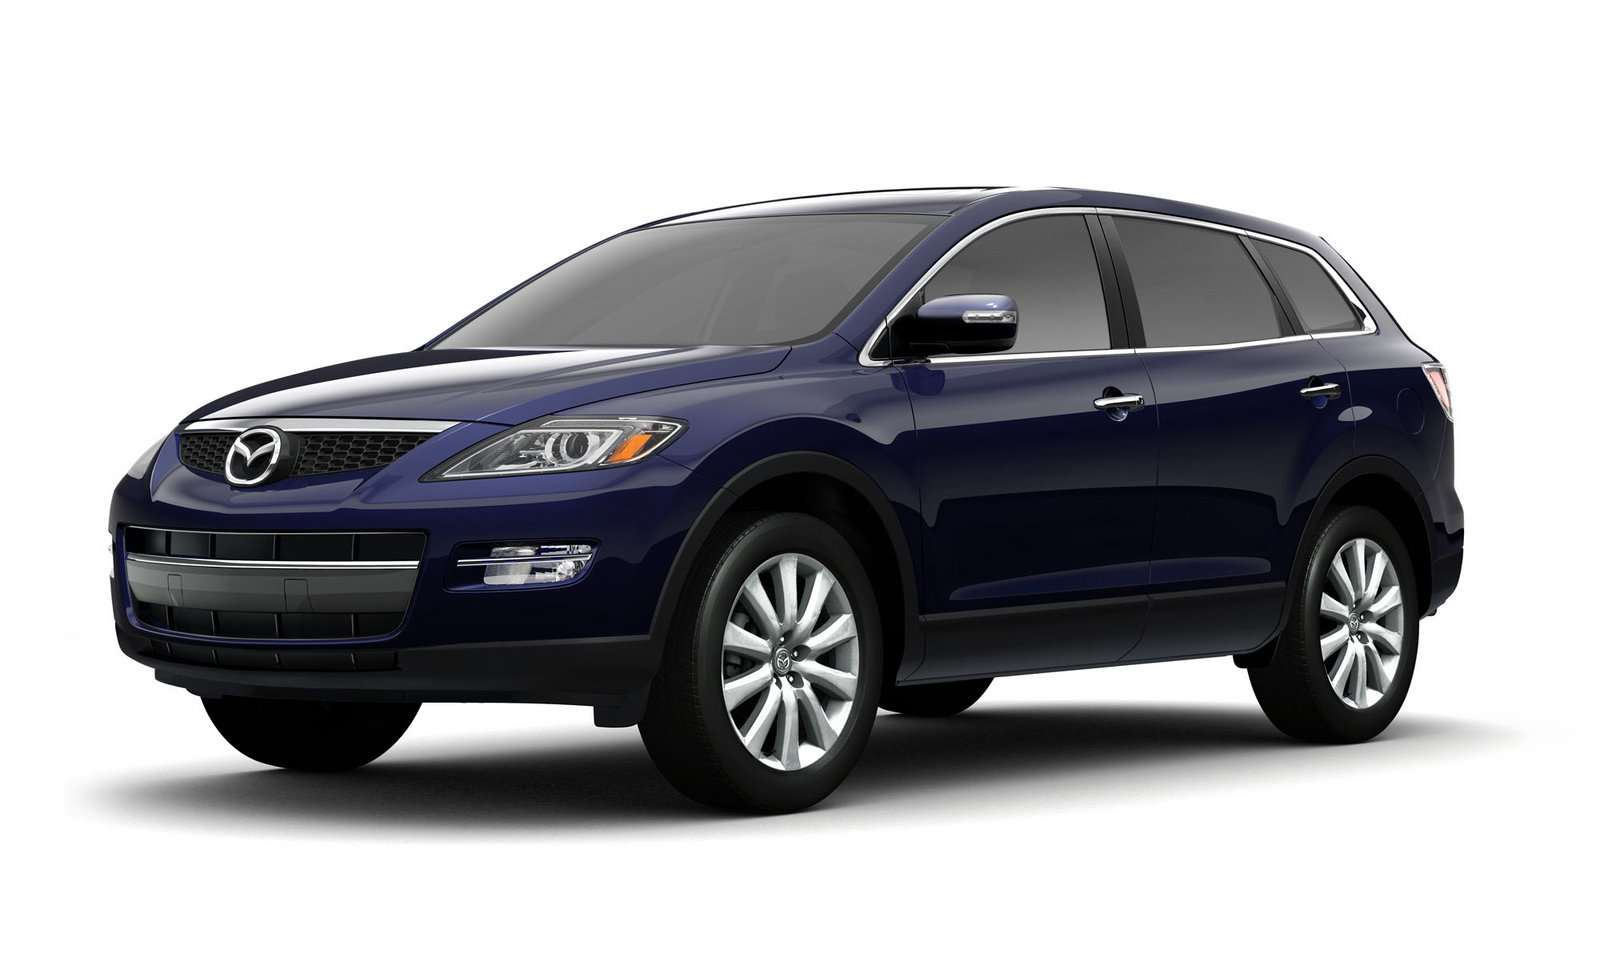 2007 mazda cx 9 crossover review top speed. Black Bedroom Furniture Sets. Home Design Ideas